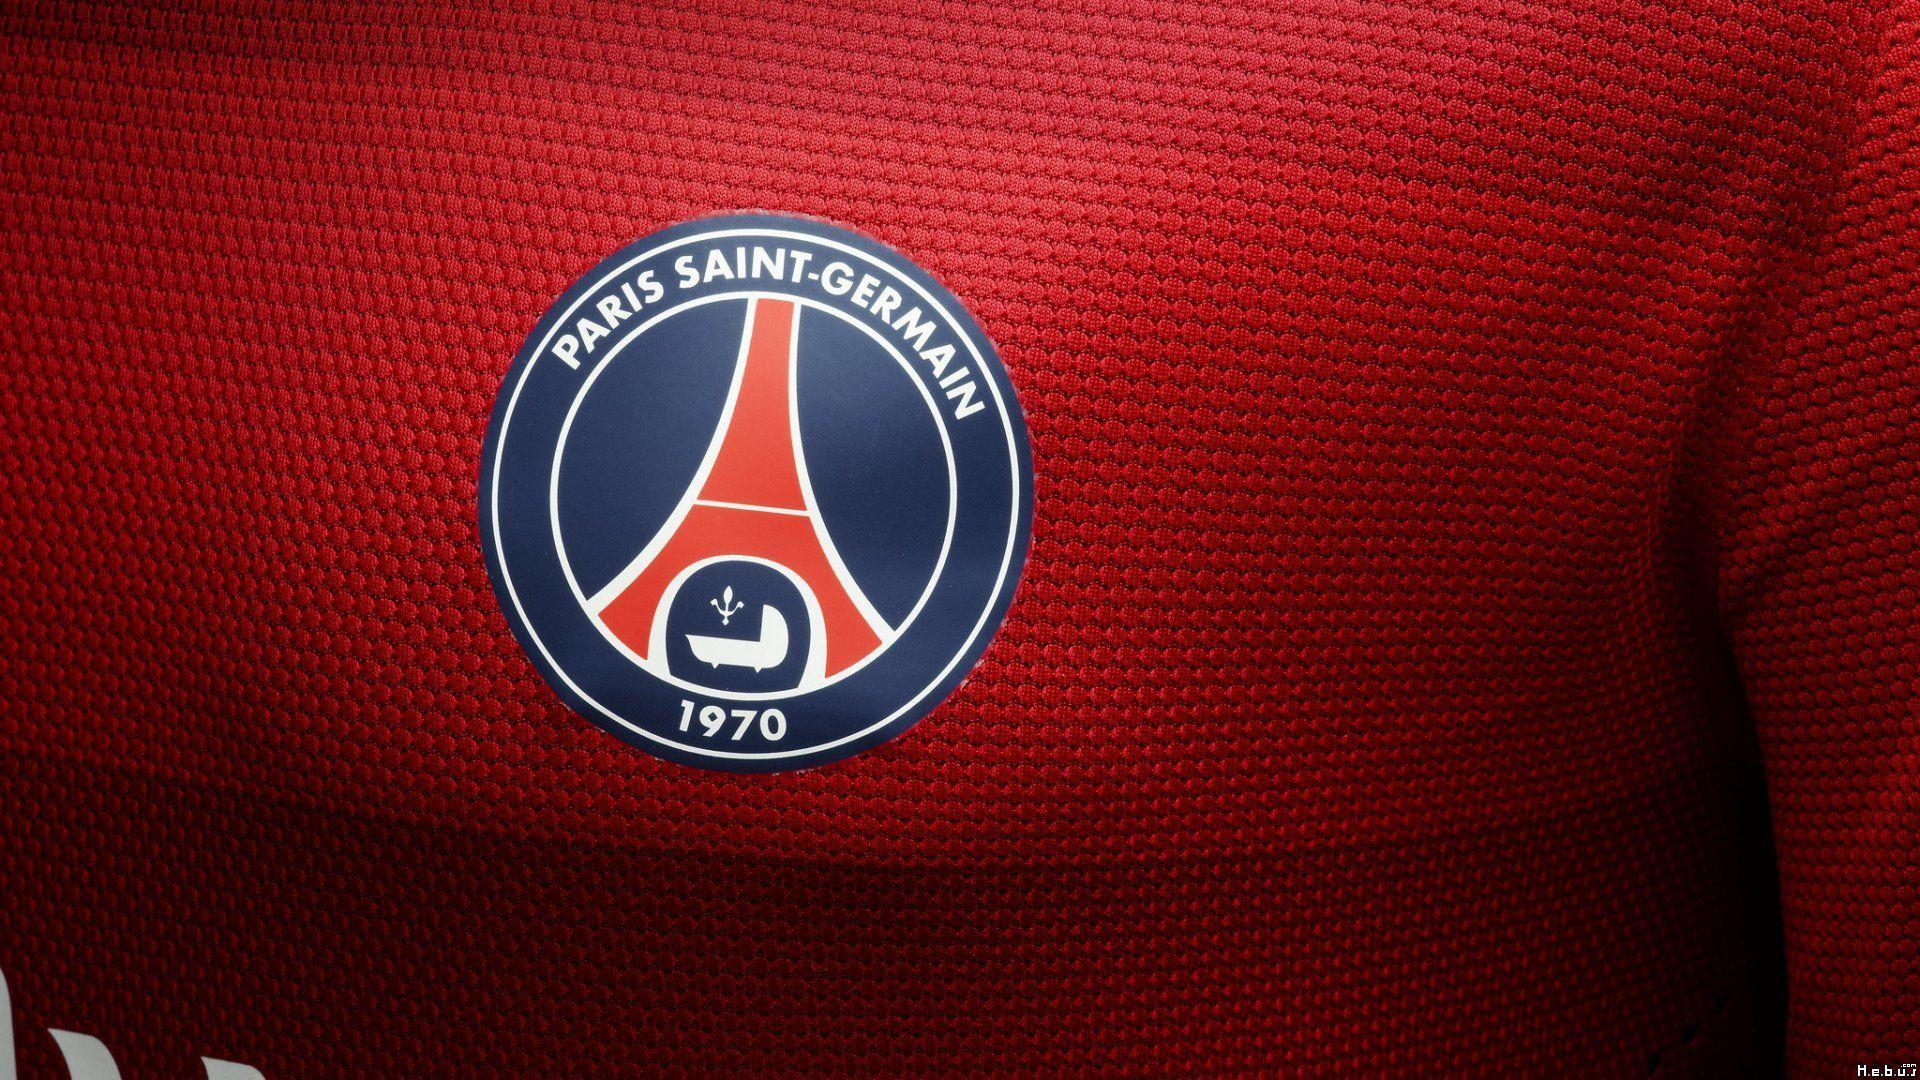 PSG Wallpaper HD - WallpaperSafari